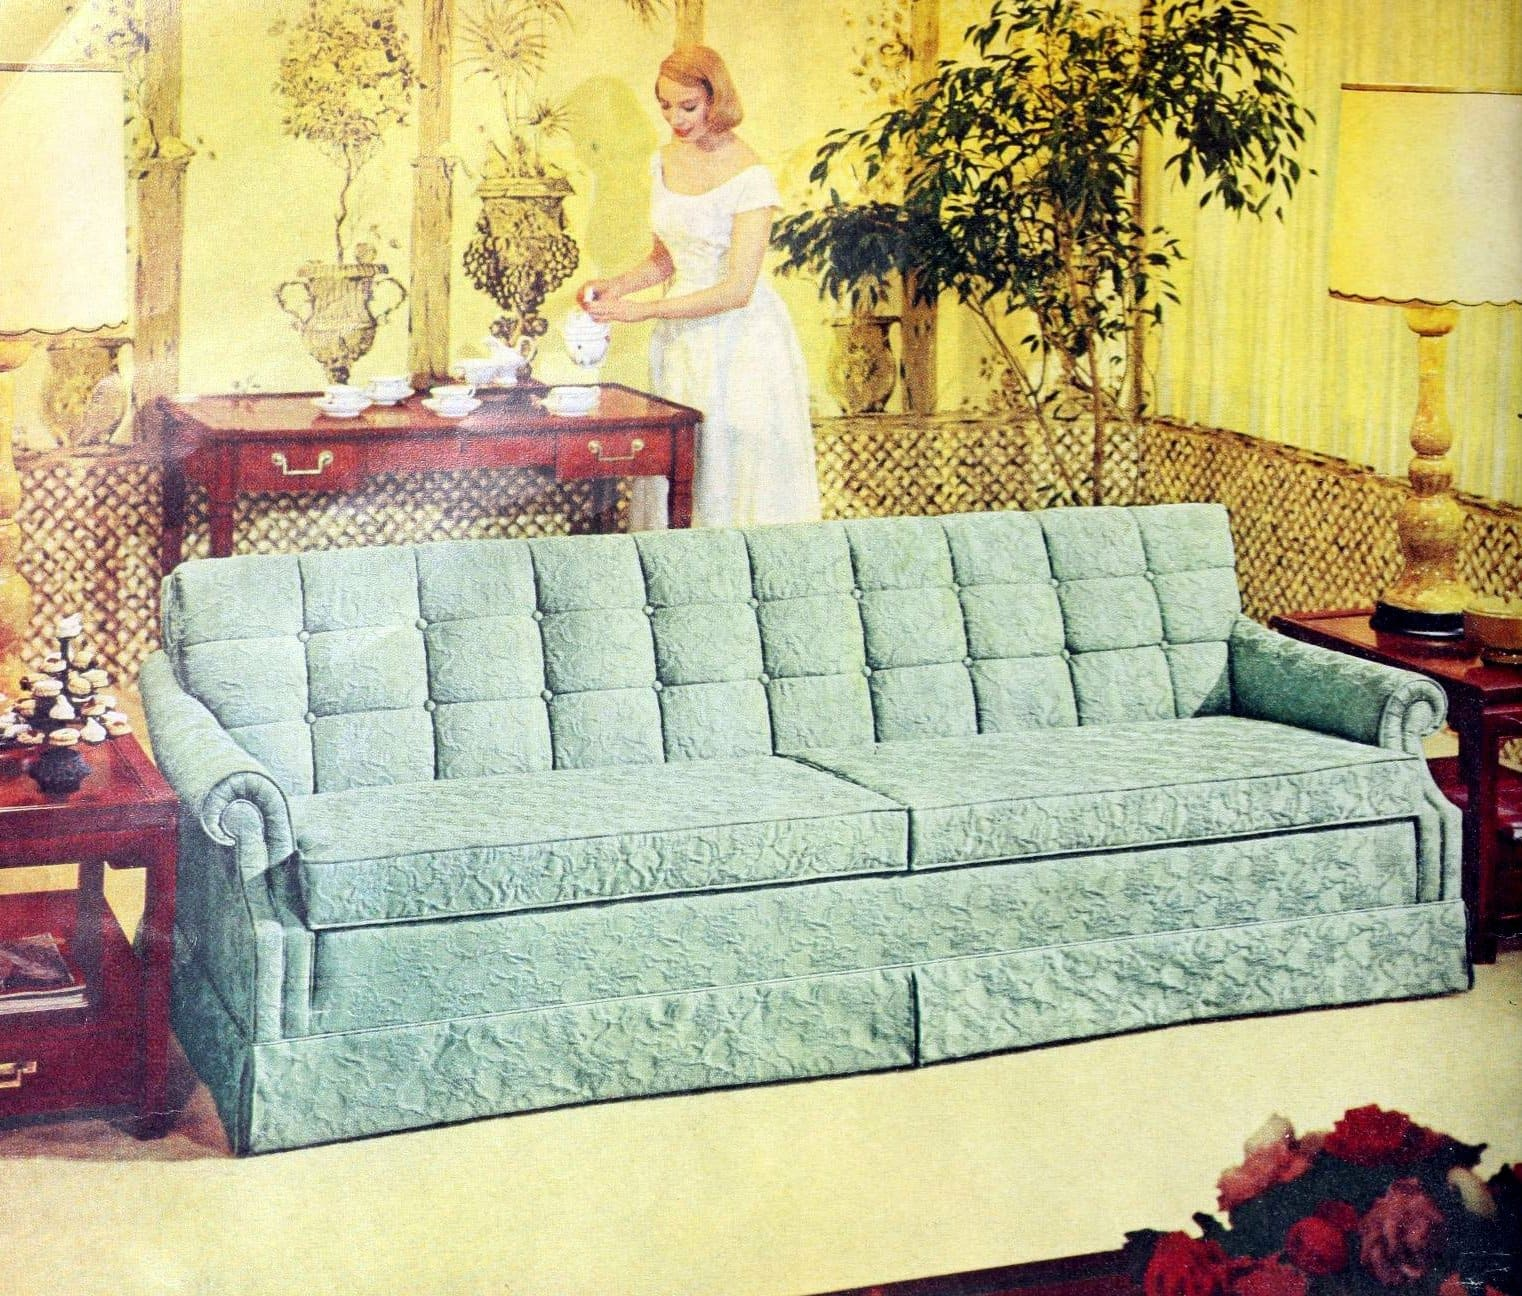 Pale blue-green sofa in the middle of a yellow sixties living room